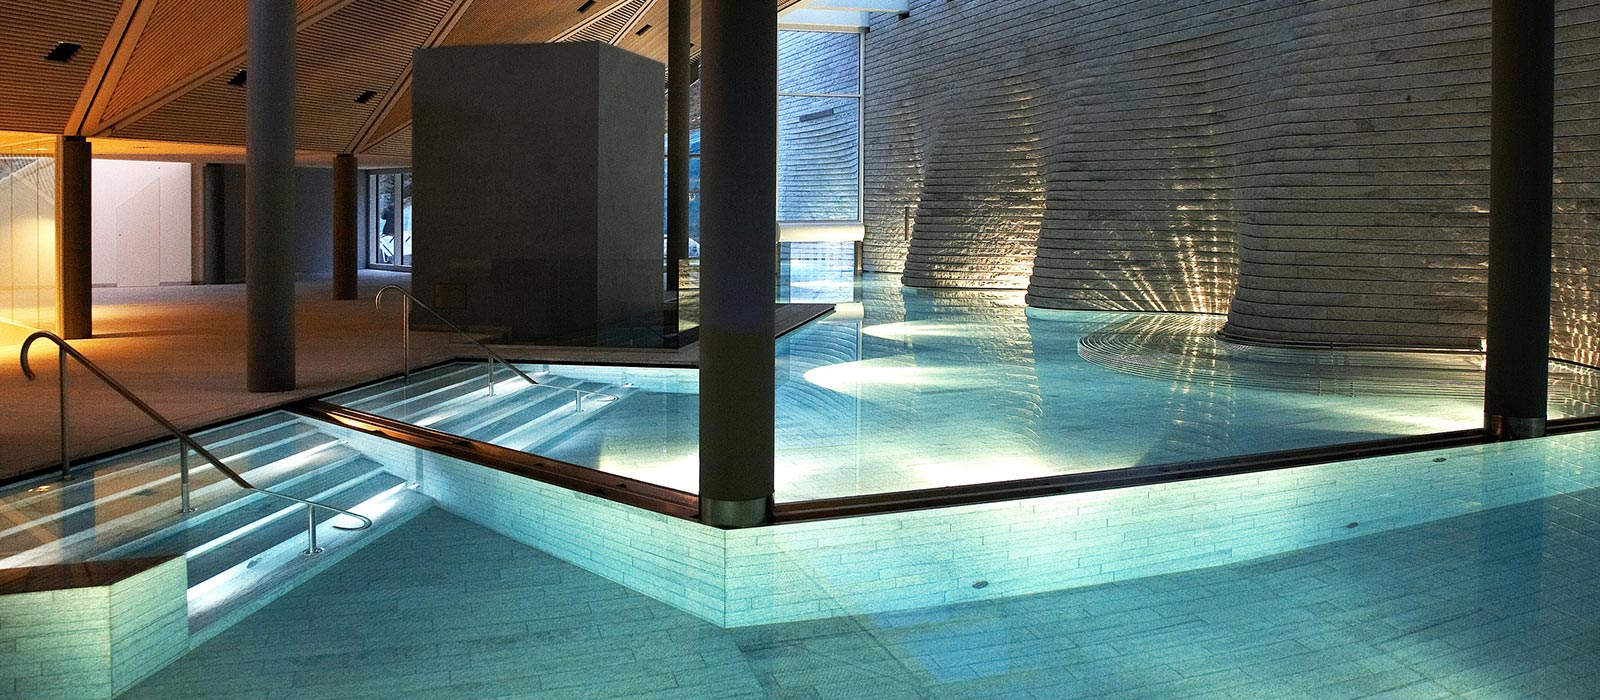 Tschuggen Bergoase Arosa Spa Und Wellness By Mario Botta Tschuggen Grand H